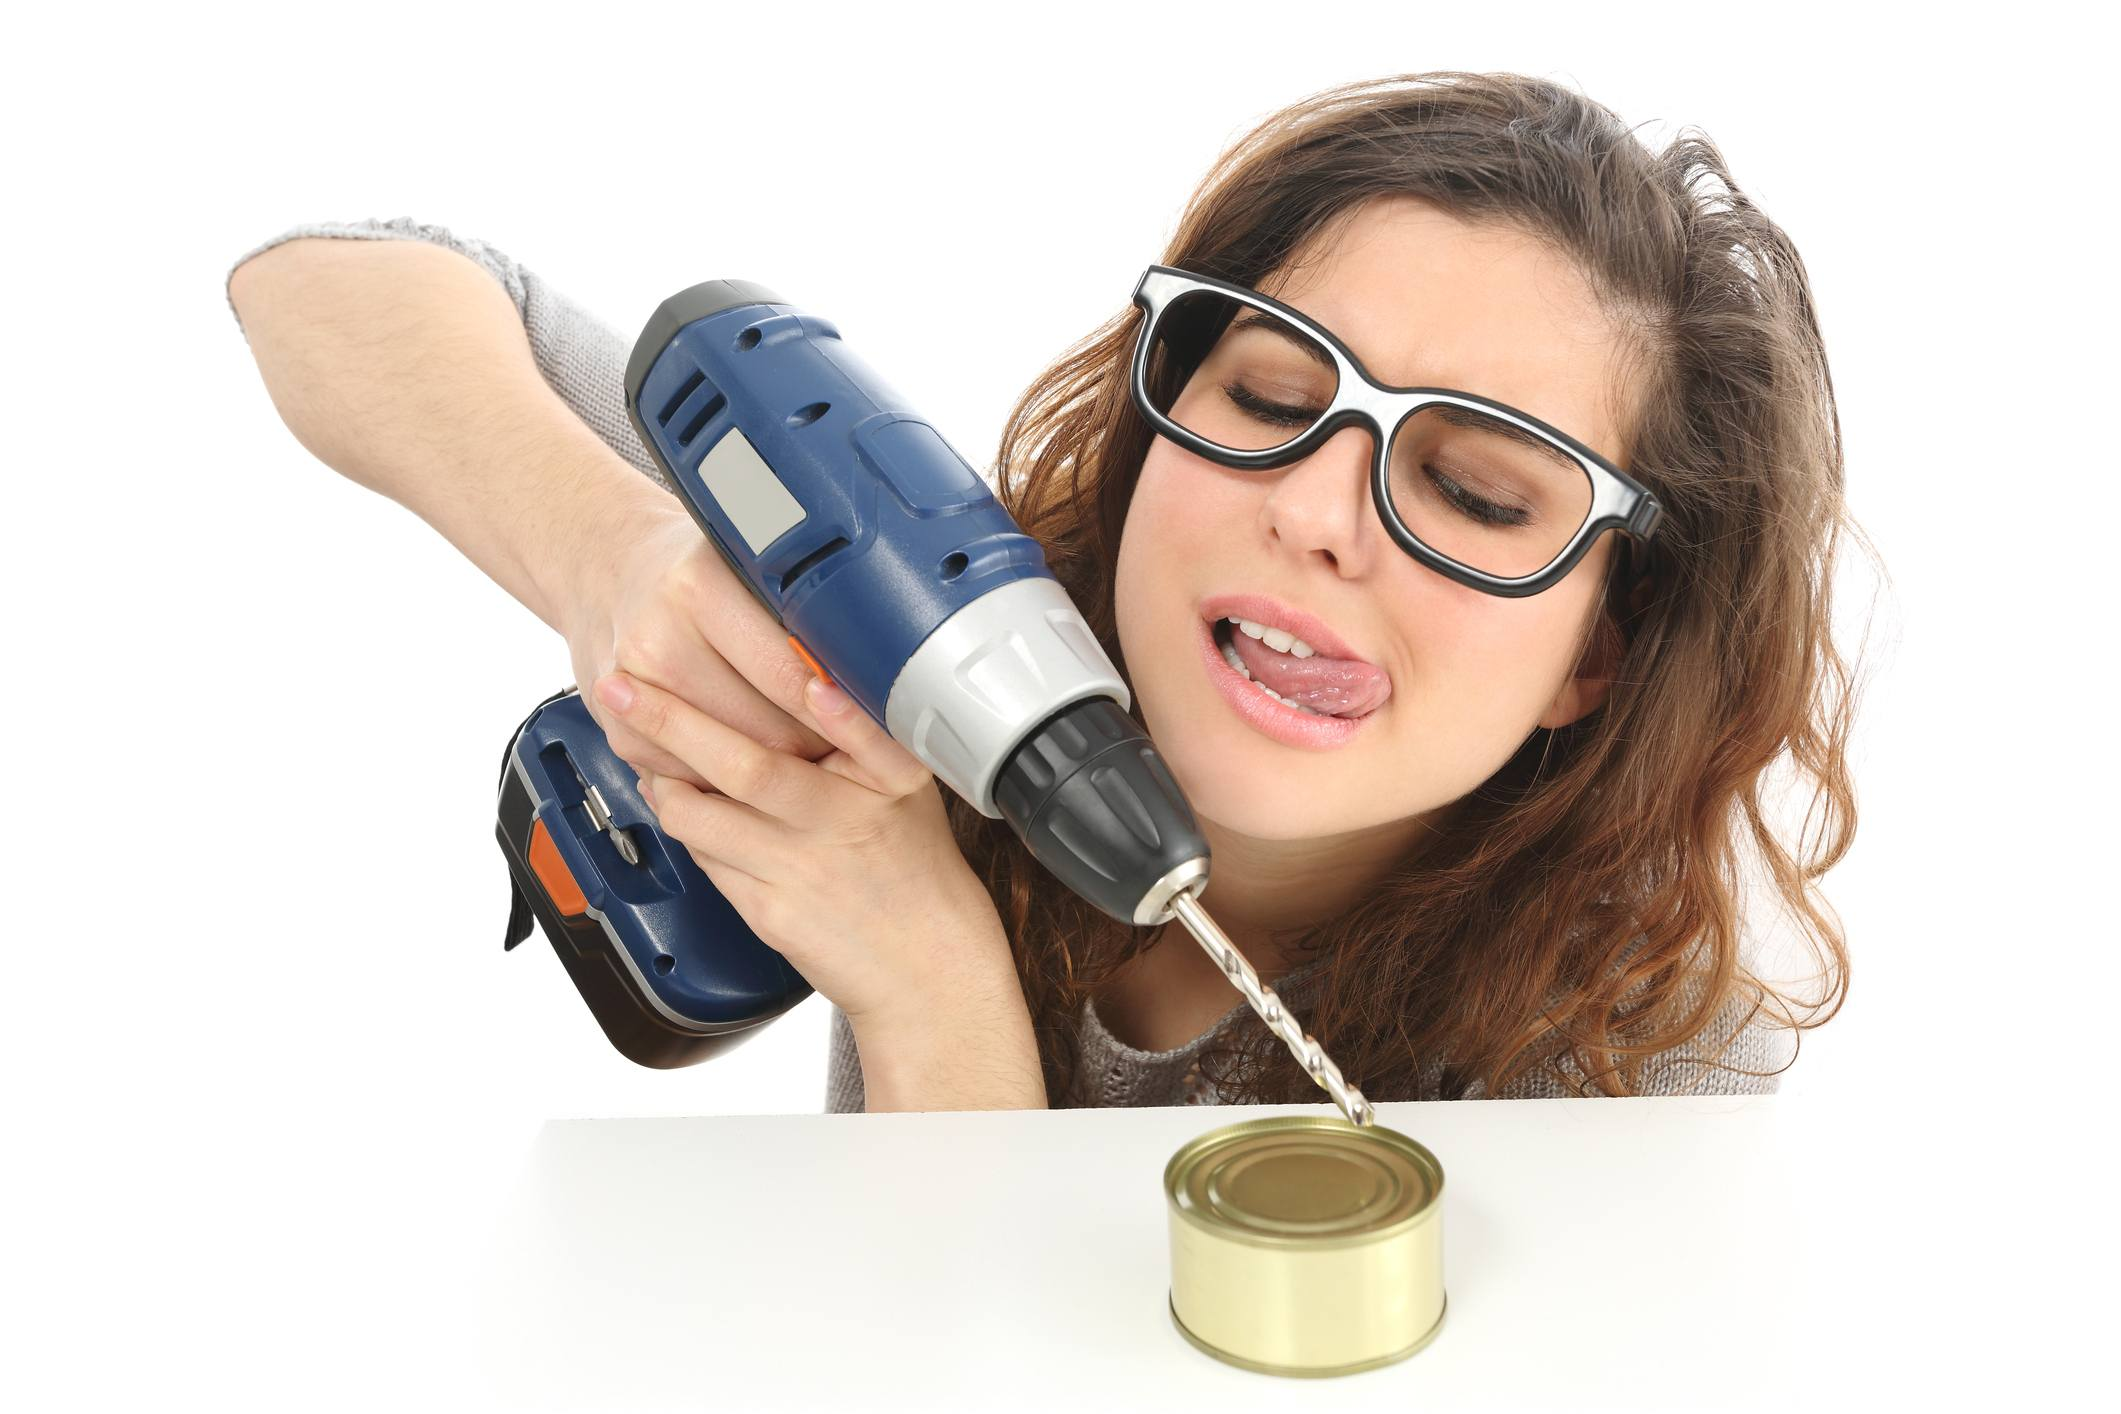 woman trying to open can